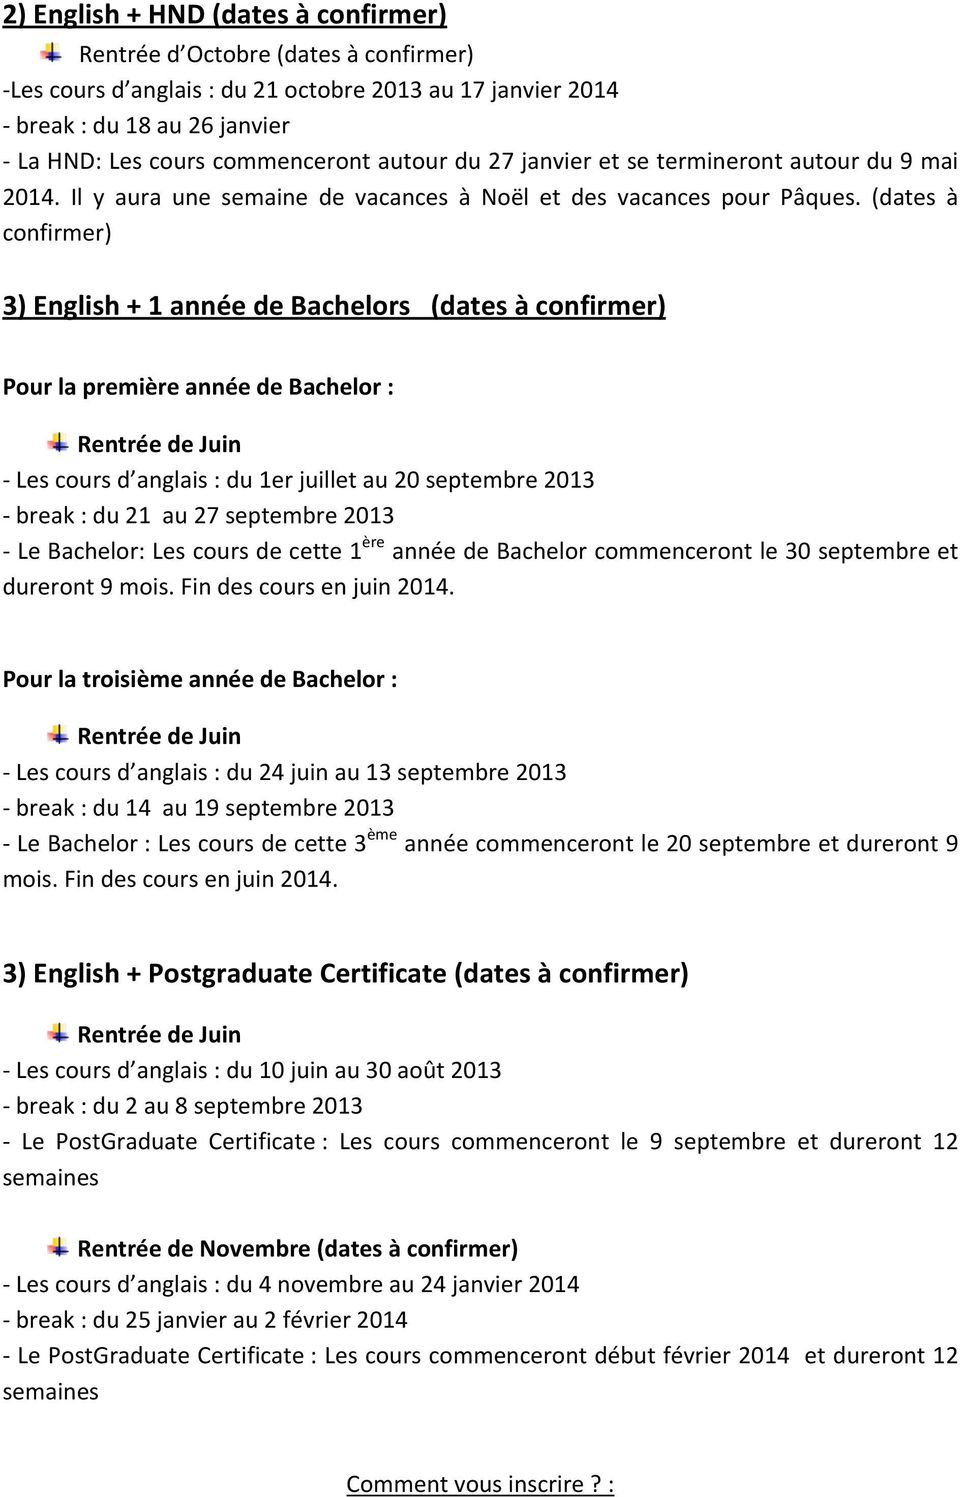 (dates à confirmer) 3)English+1annéedeBachelors(datesàconfirmer) PourlapremièreannéedeBachelor: RentréedeJuin Lescoursd anglais:du1erjuilletau20septembre2013 break:du21au27septembre2013